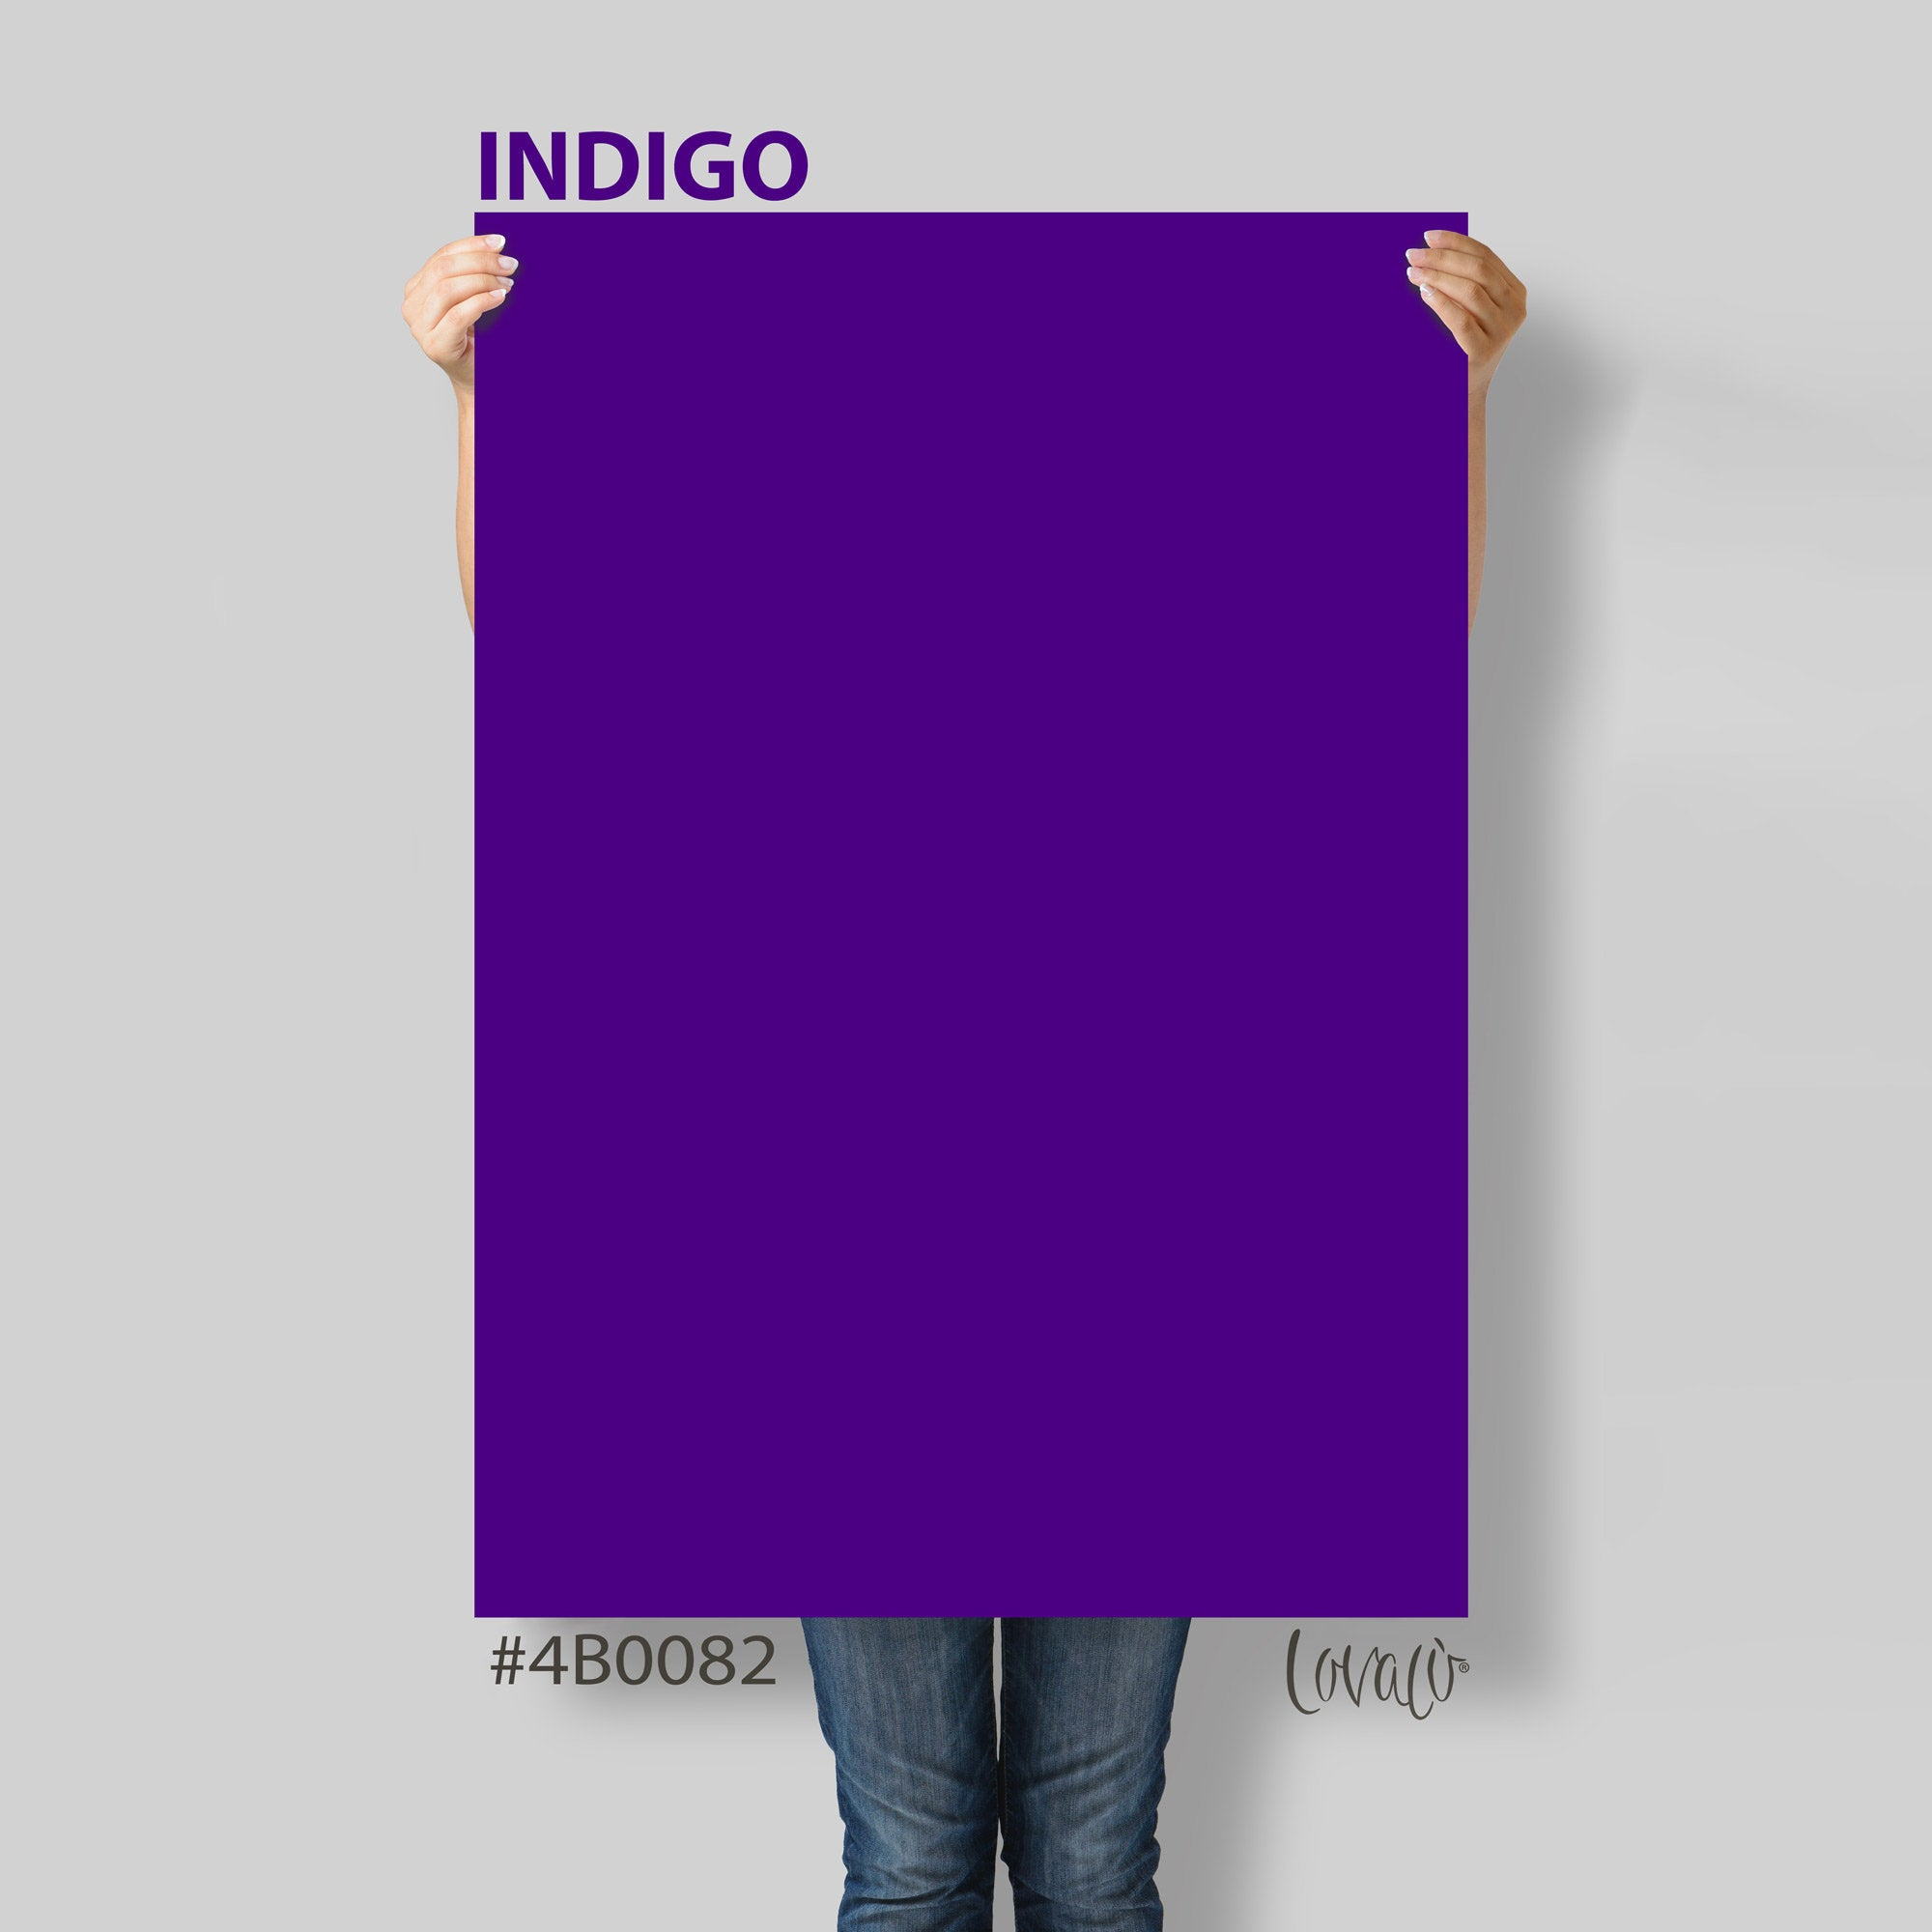 Indigo solid color Photography Backdrop for Product, Instagram, Flat lay, Social, New born & Food Photography - Lov4031